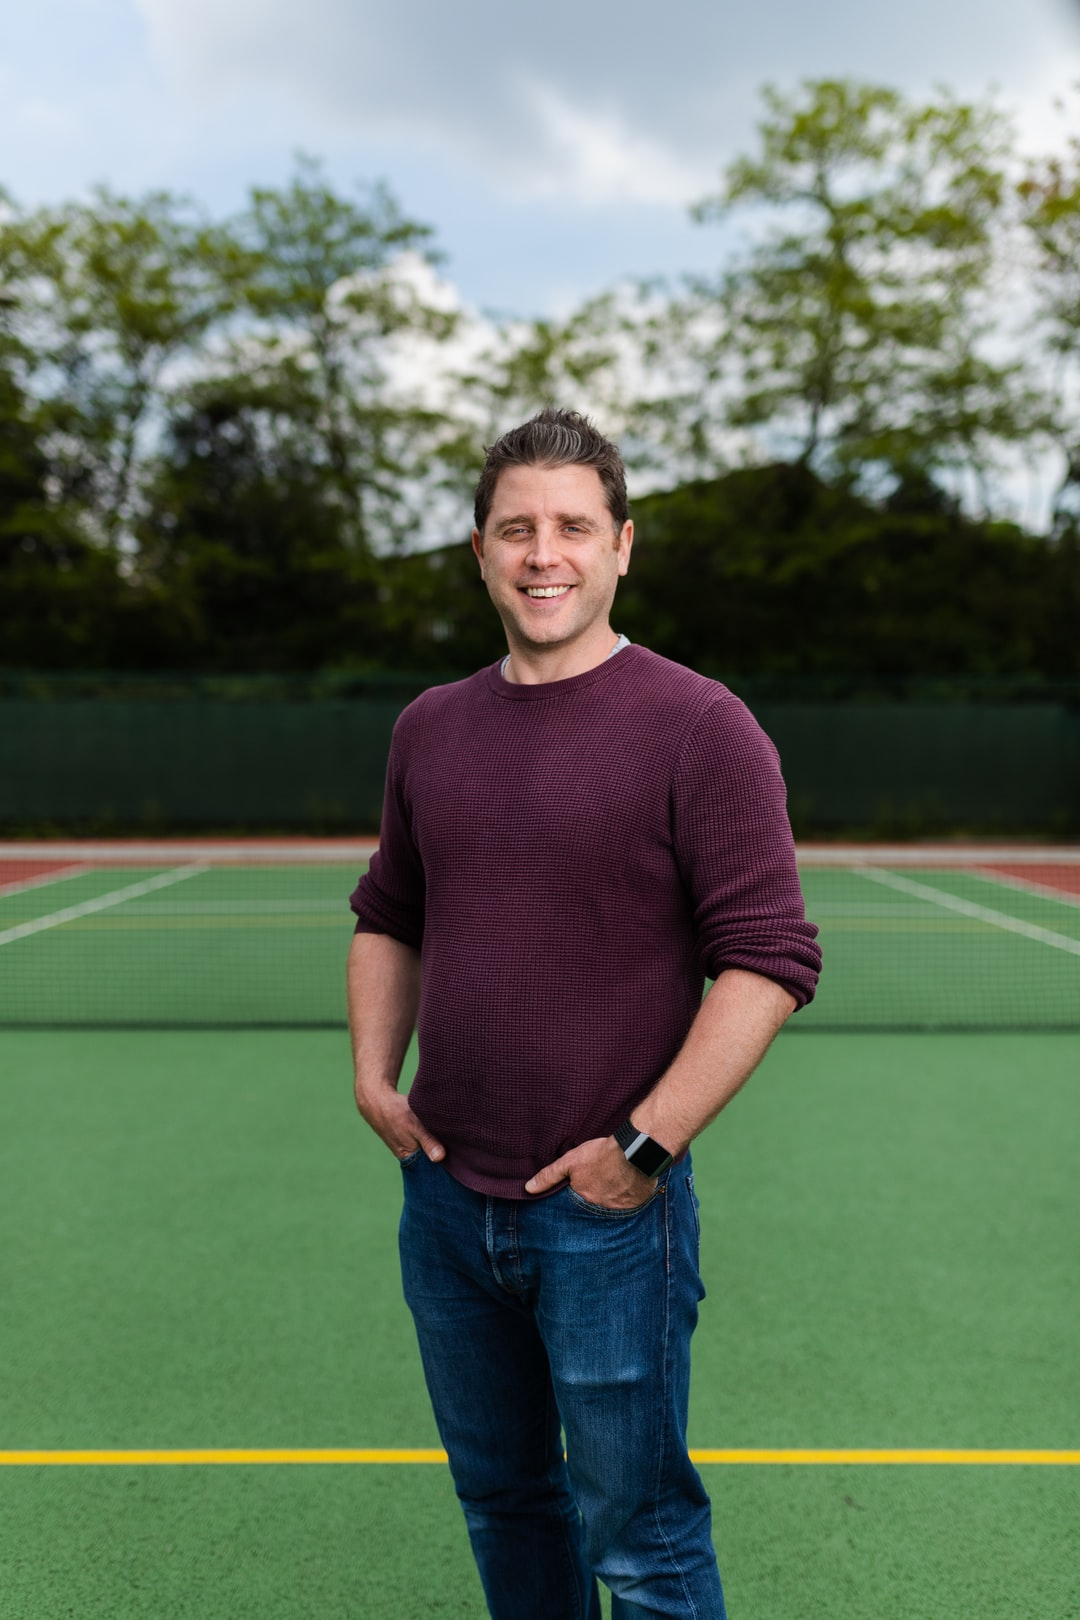 Male sports engineer on tennis court